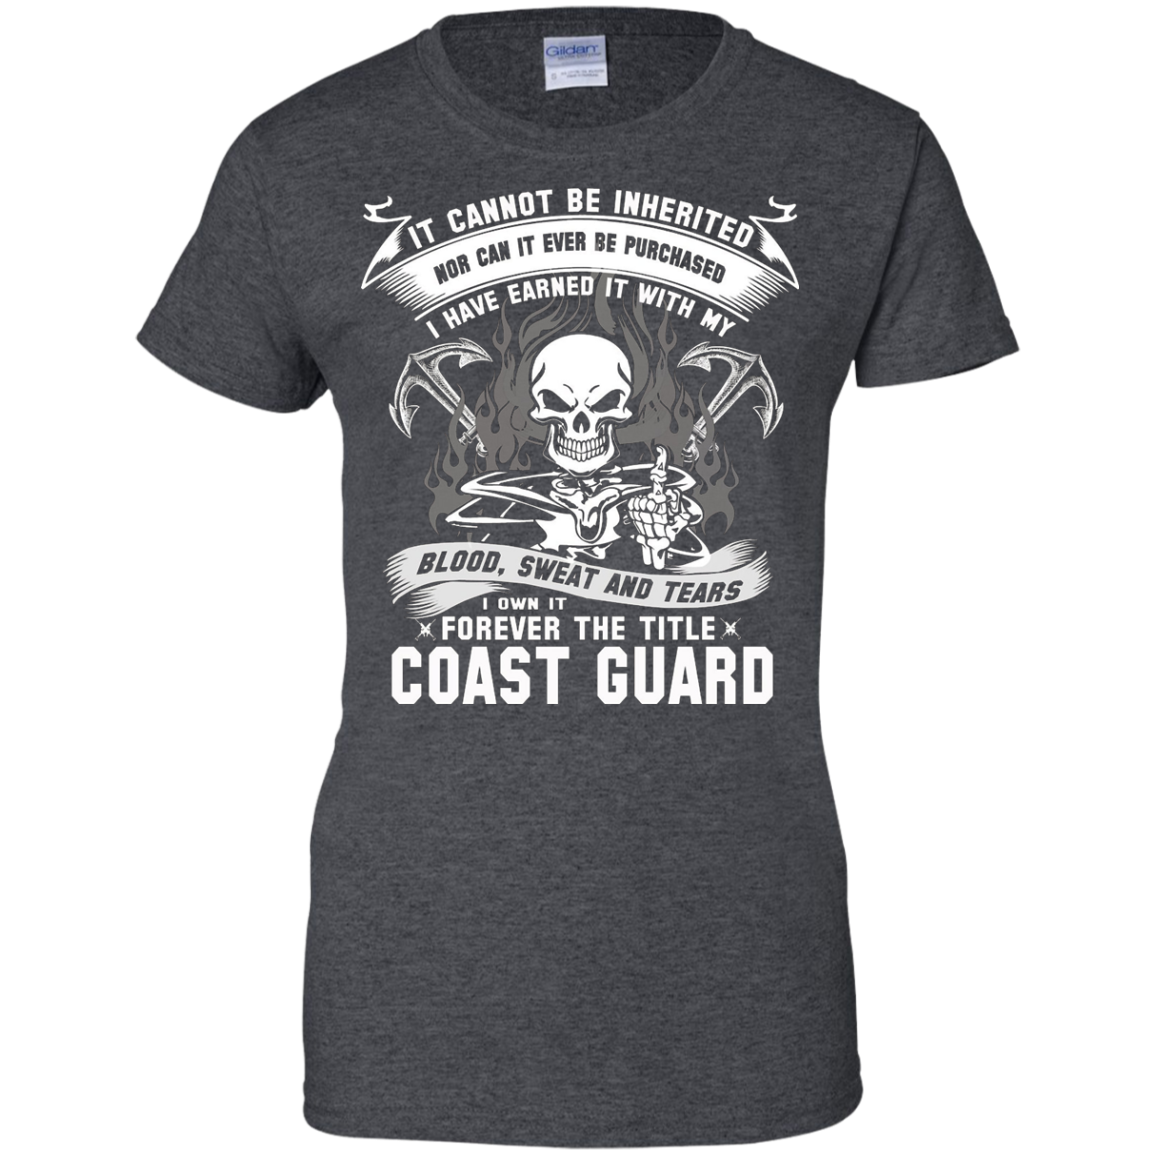 coast guard T-shirt , it cannot be inherited nor can it ever